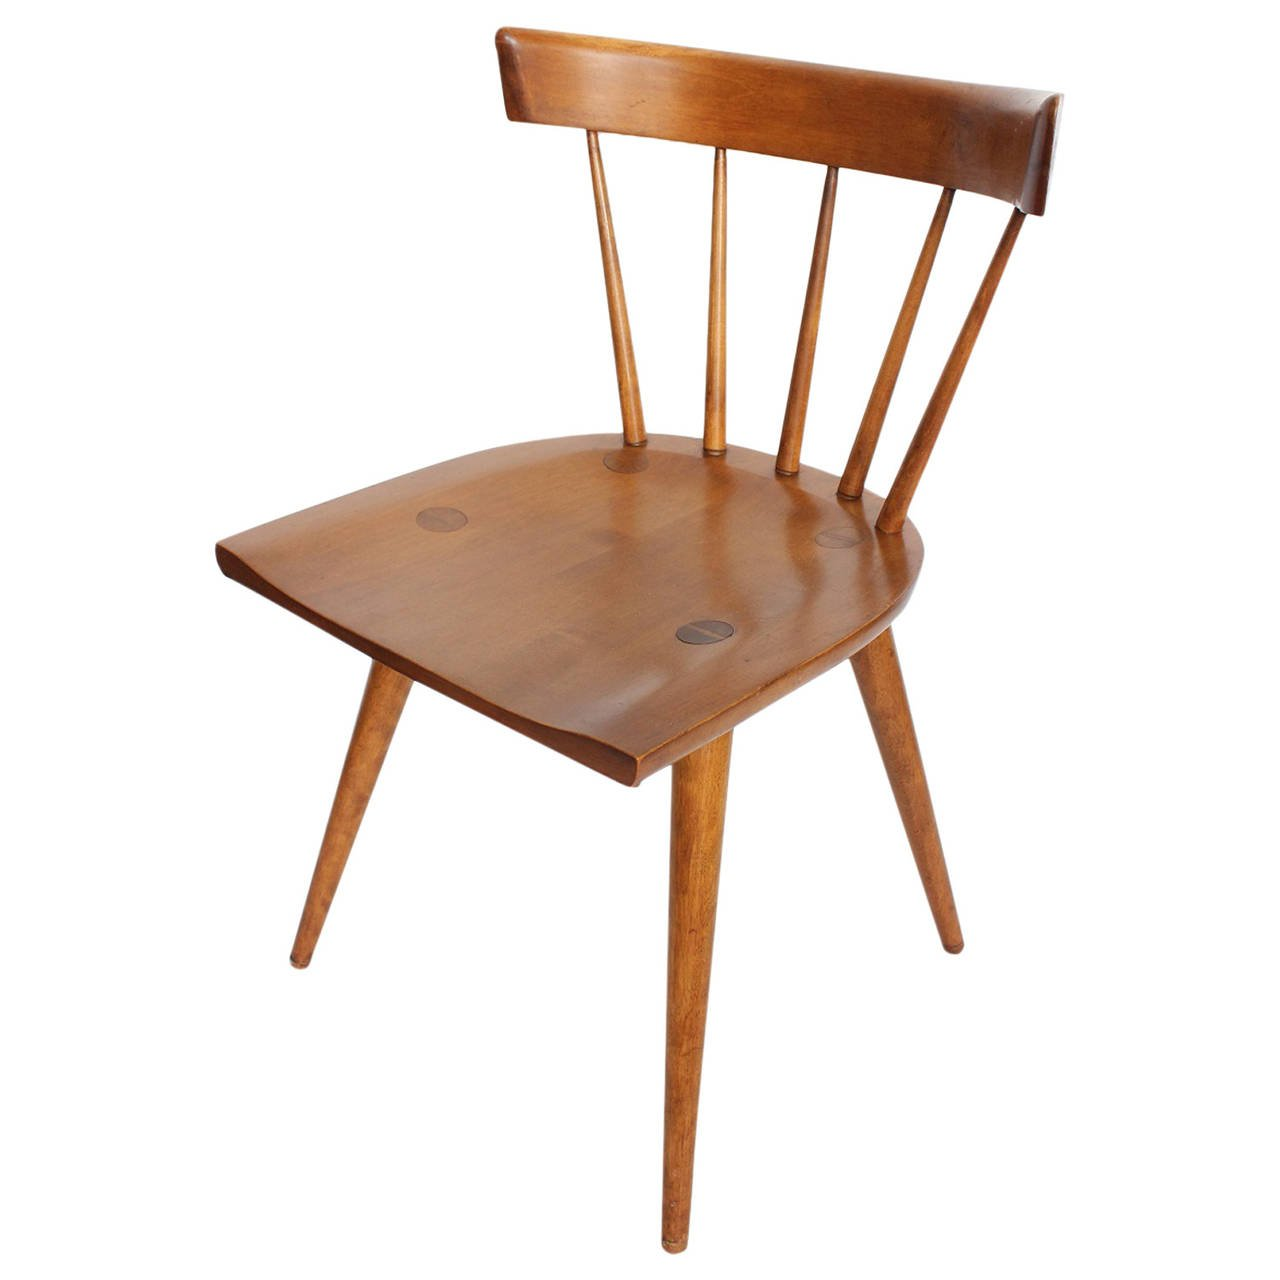 Paul Mccobb Chairs Mid Century Spindle Back Desk Side Chair By Paul Mccobb In 2019